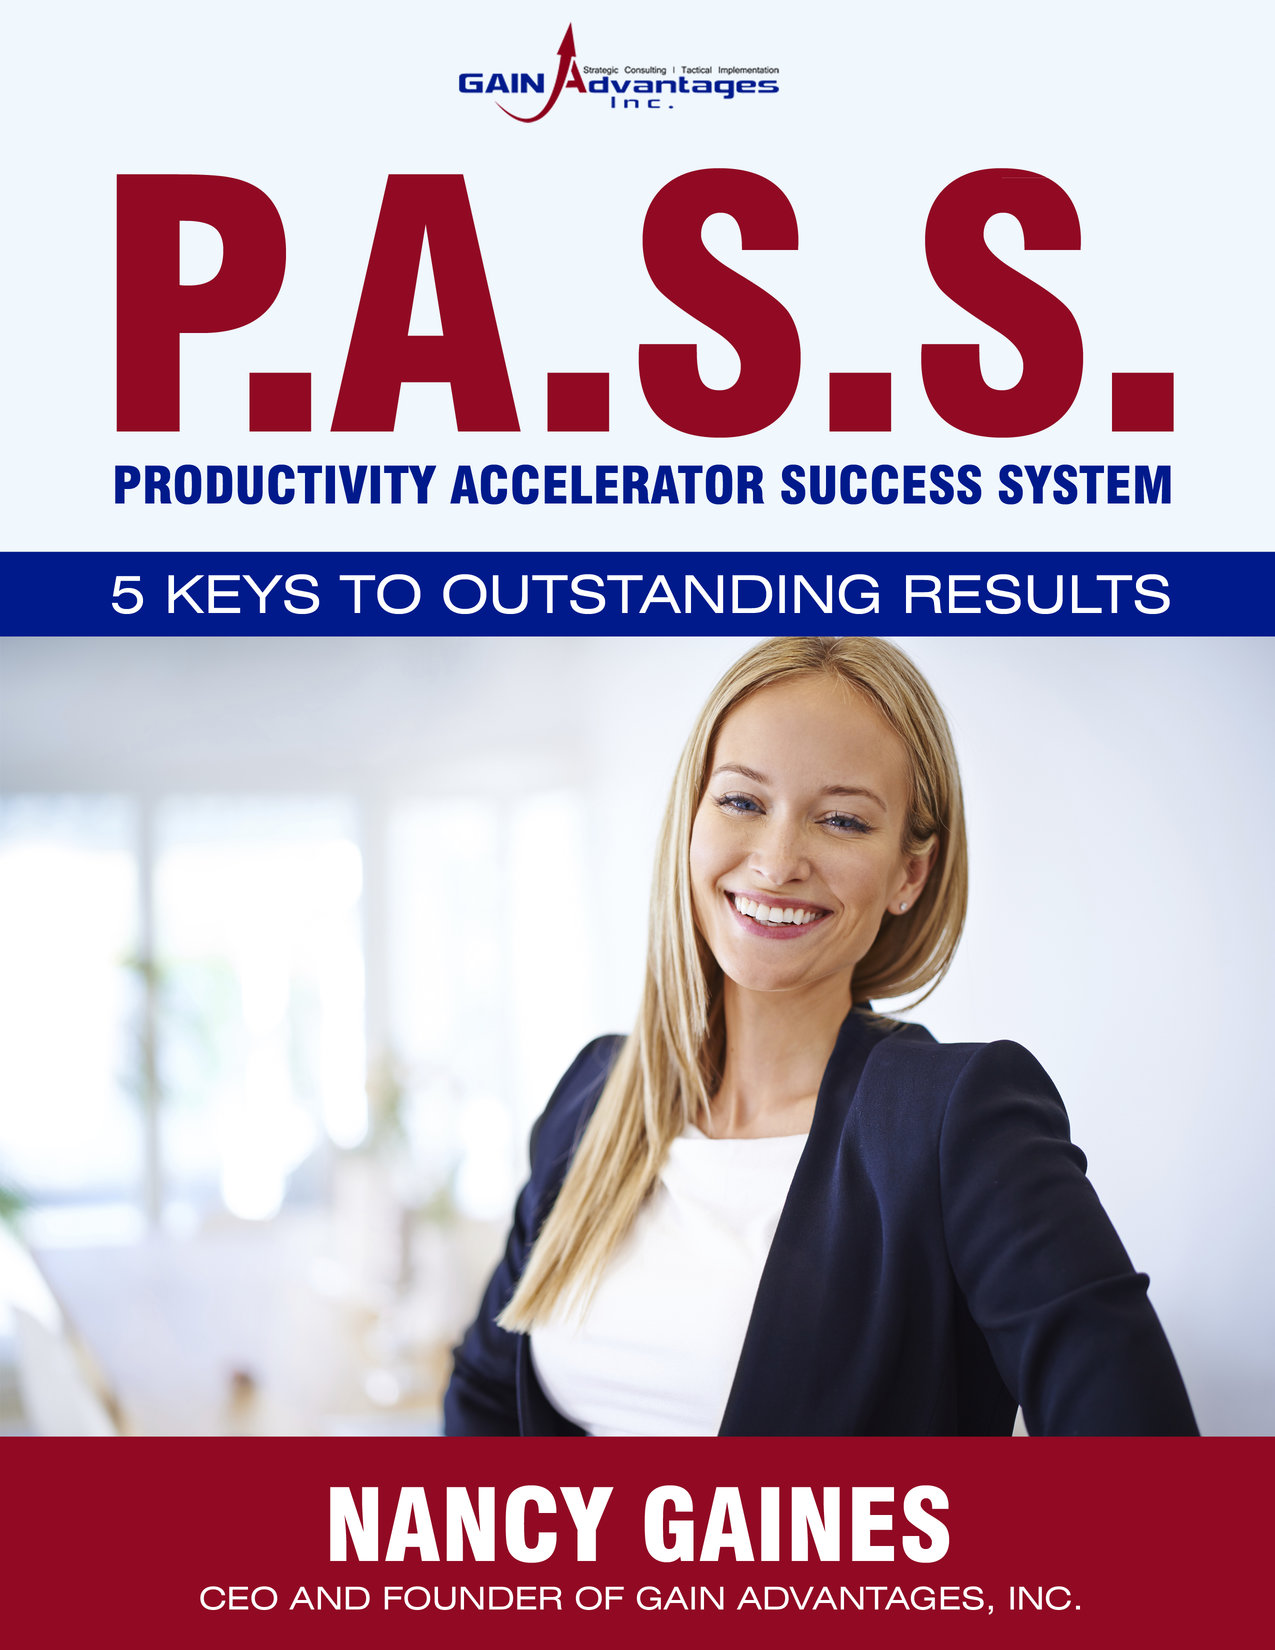 Productivity Accelerator Success System